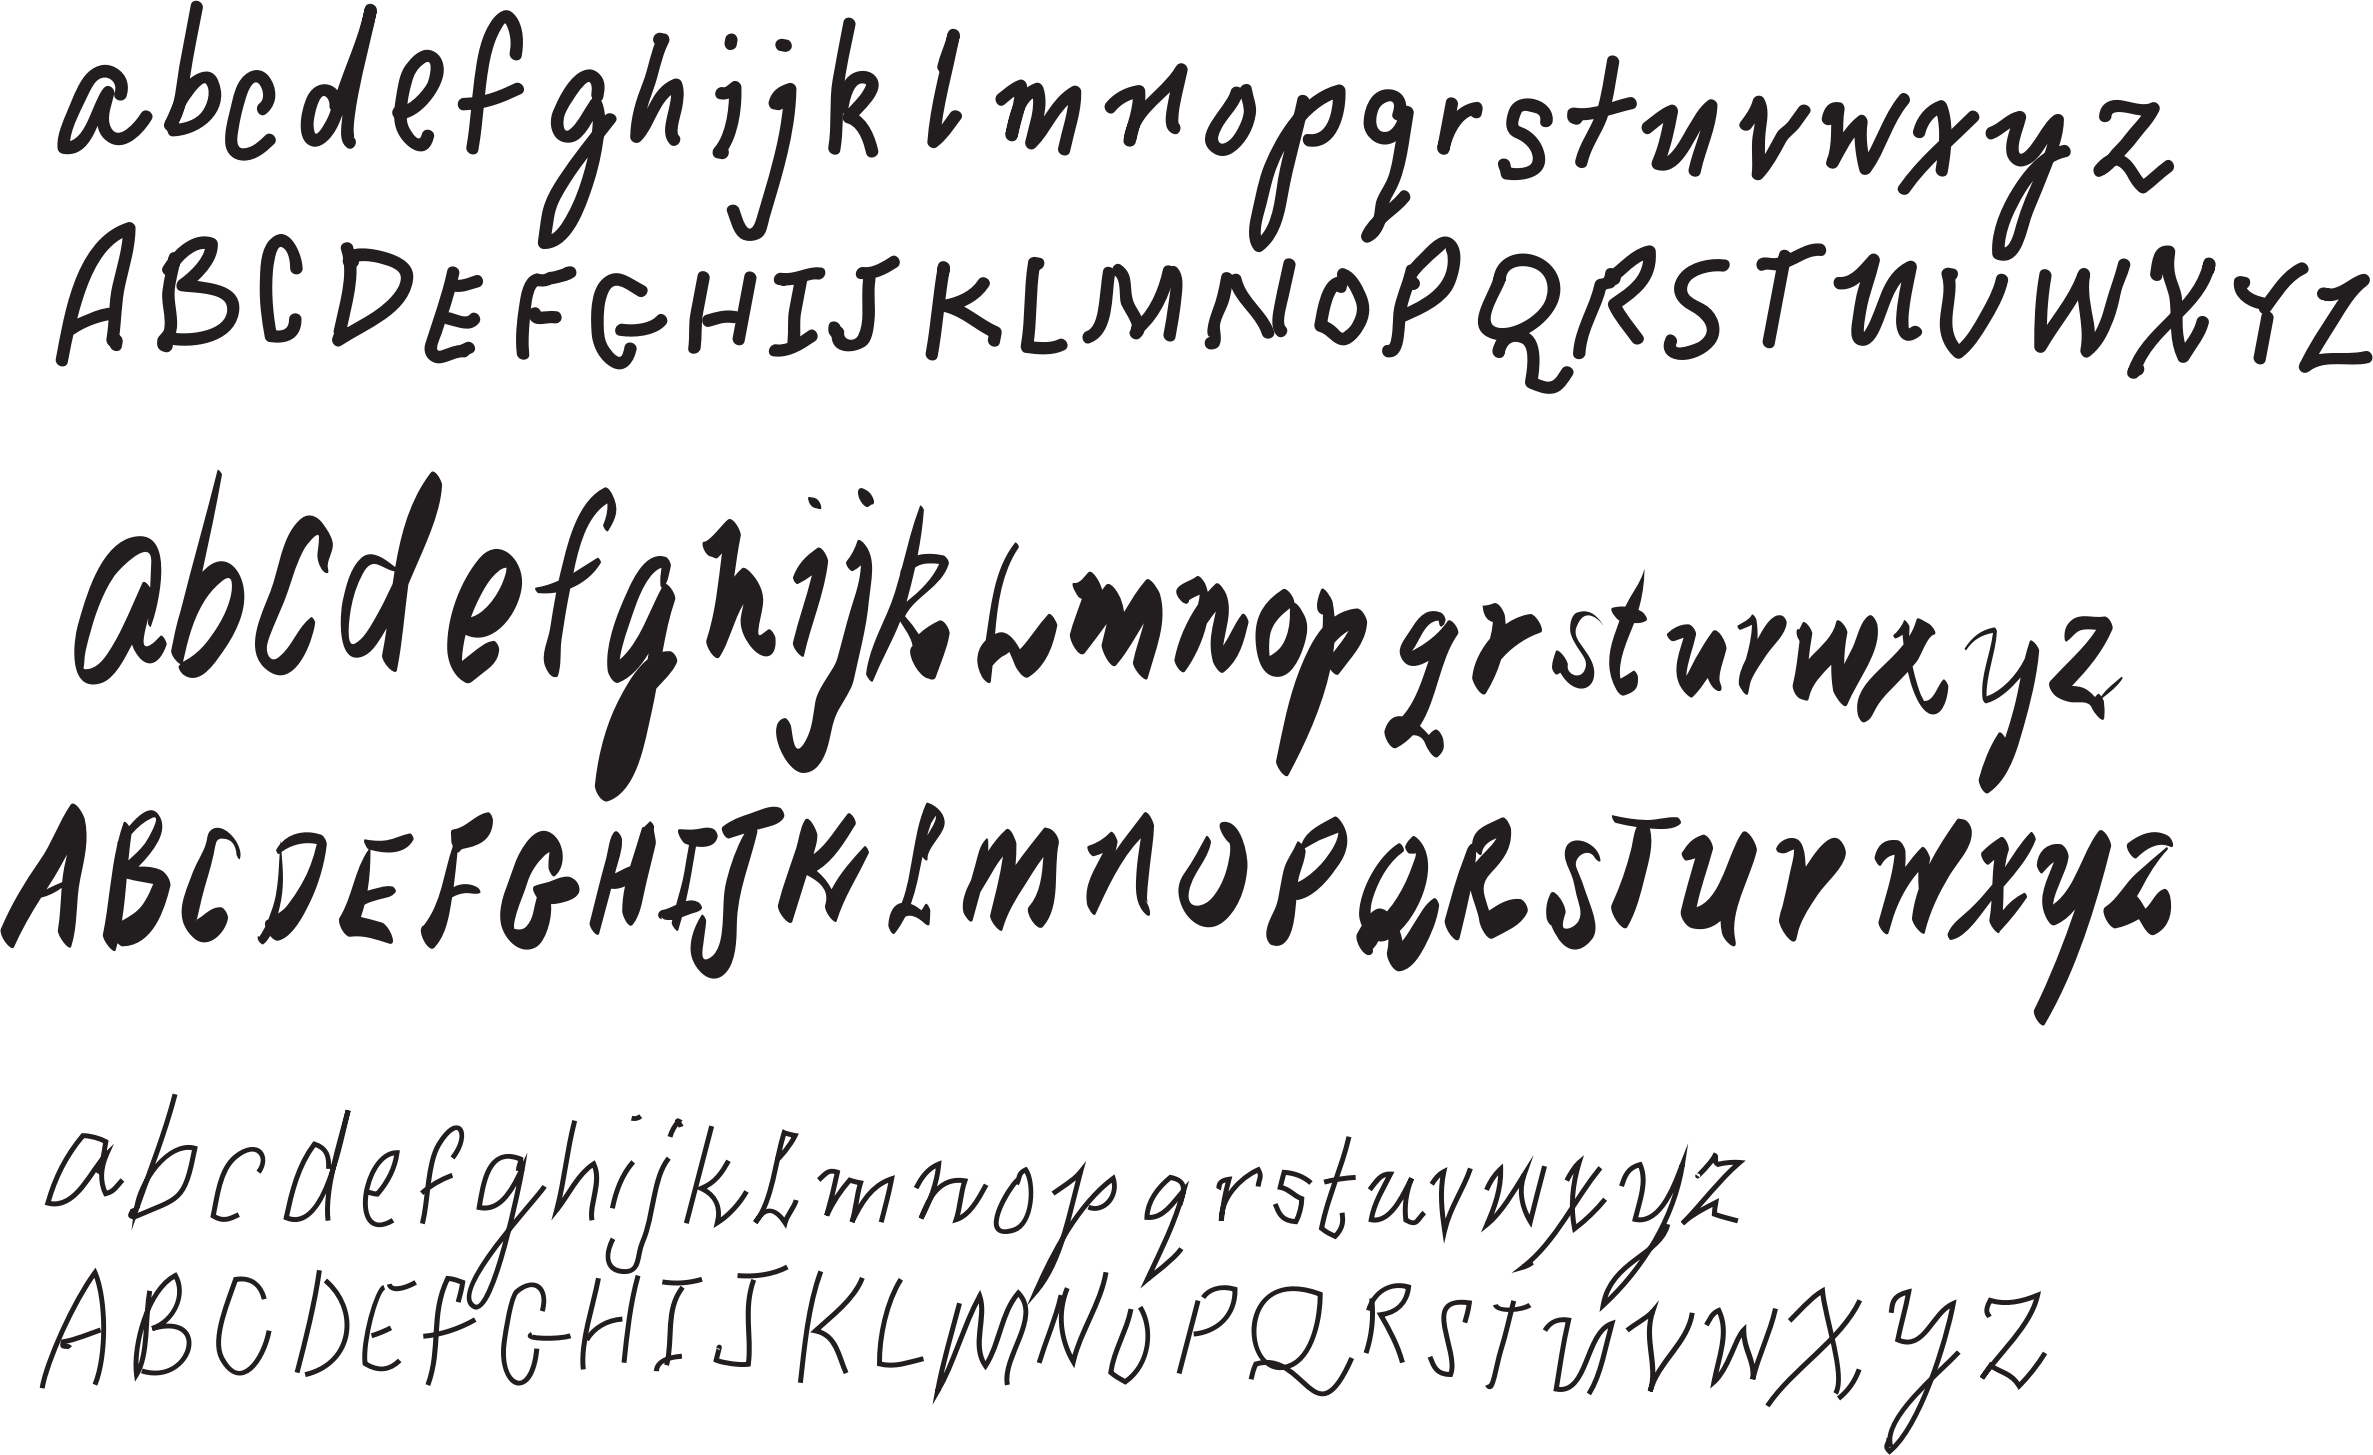 Handwriting clipart working hand. Lettering big image png